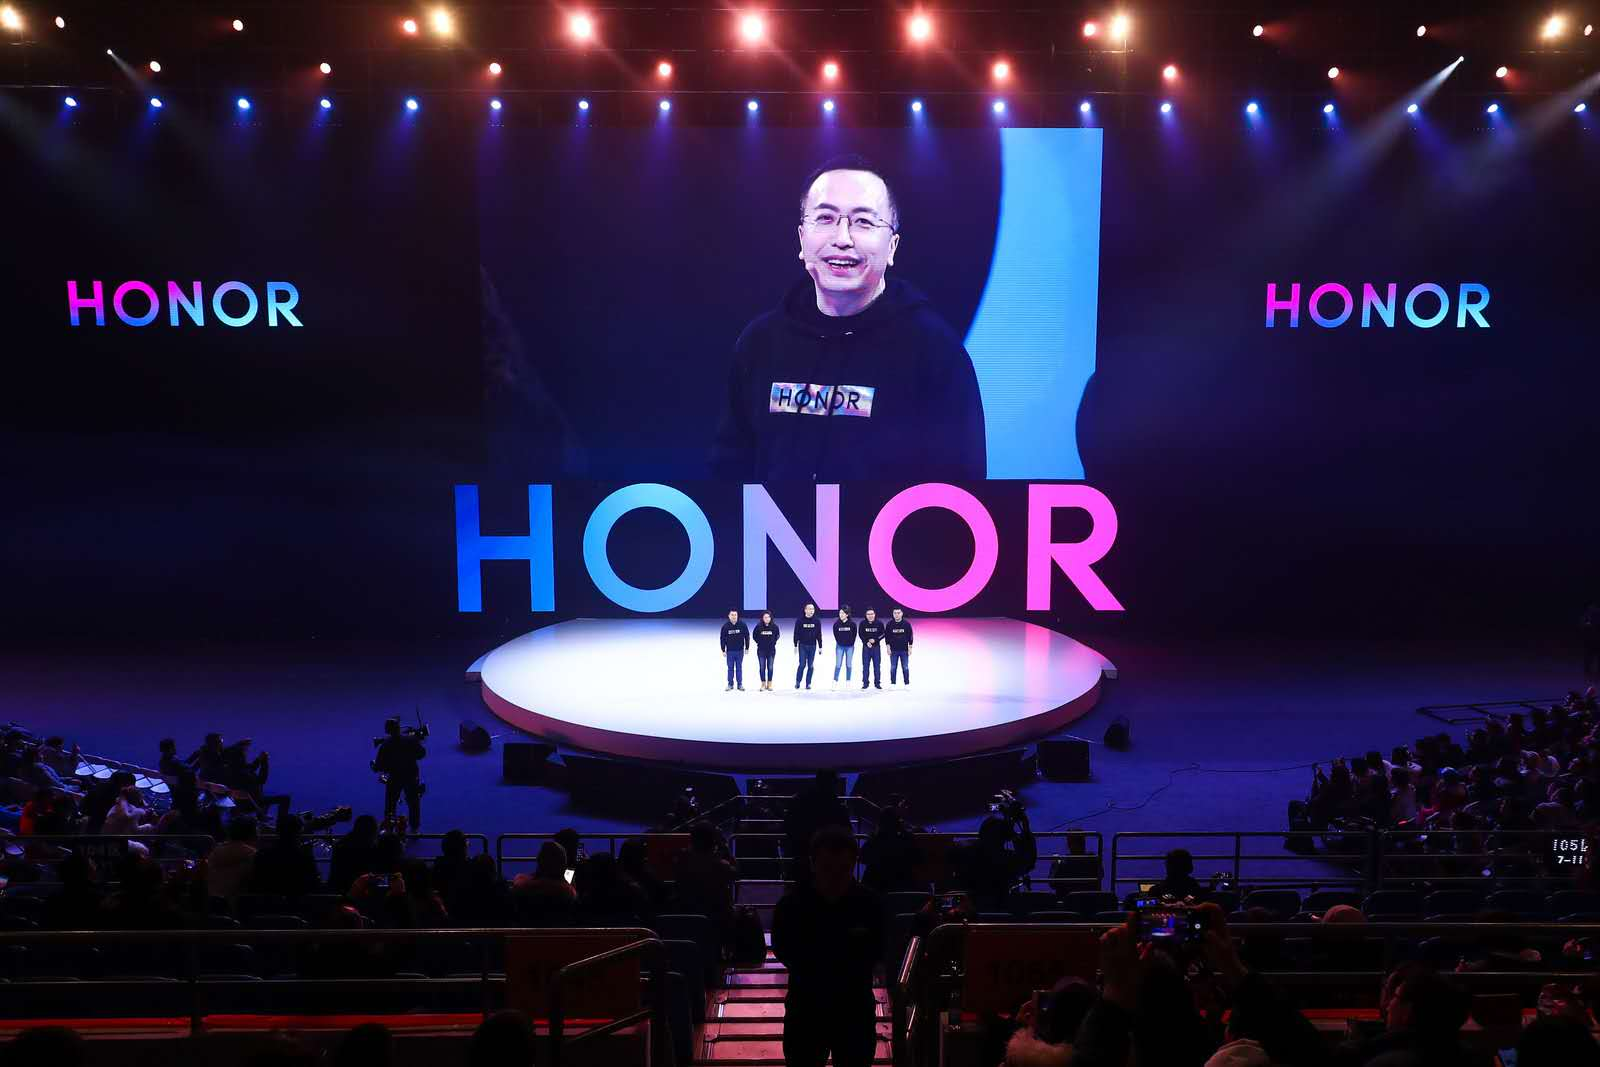 HONOR Sees Strong Growth Amid Global Industry Decline